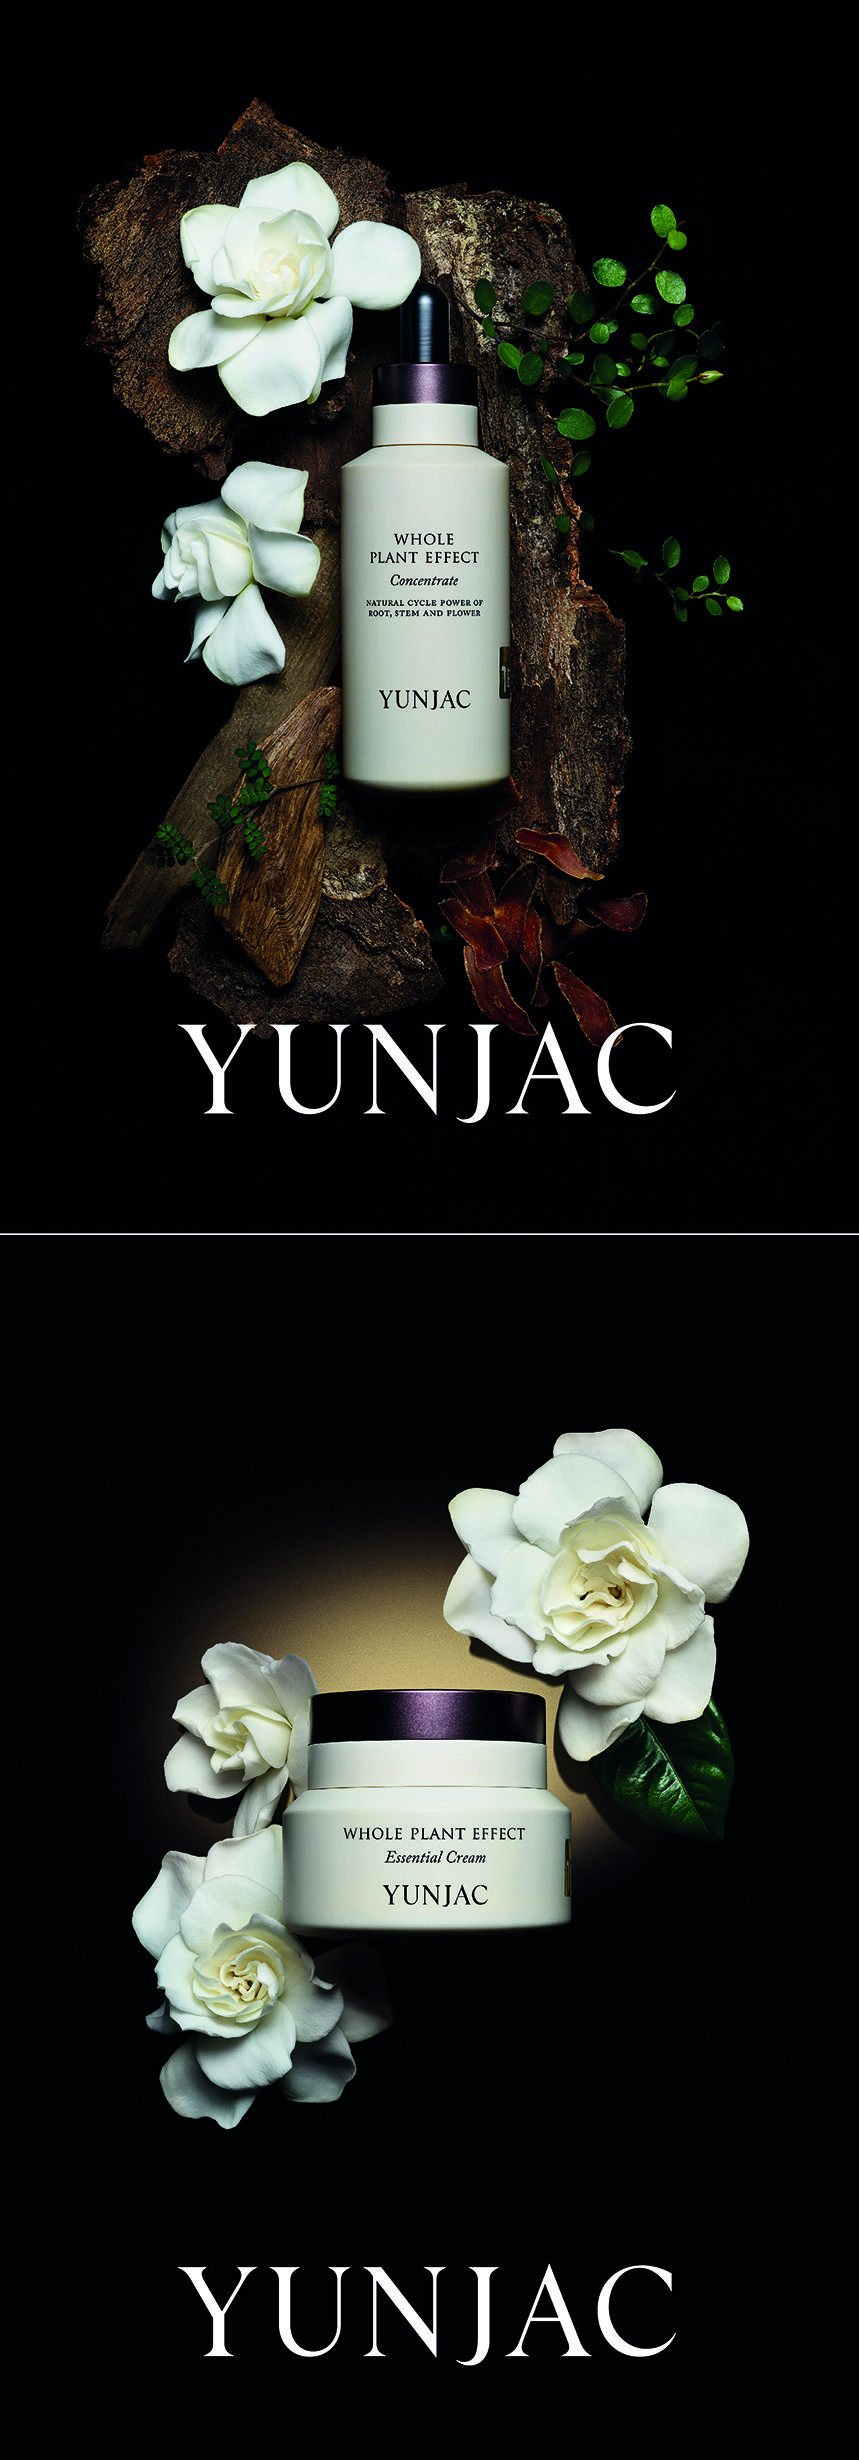 New premium Korean cosmetic brand, Yunjac. Photographed by